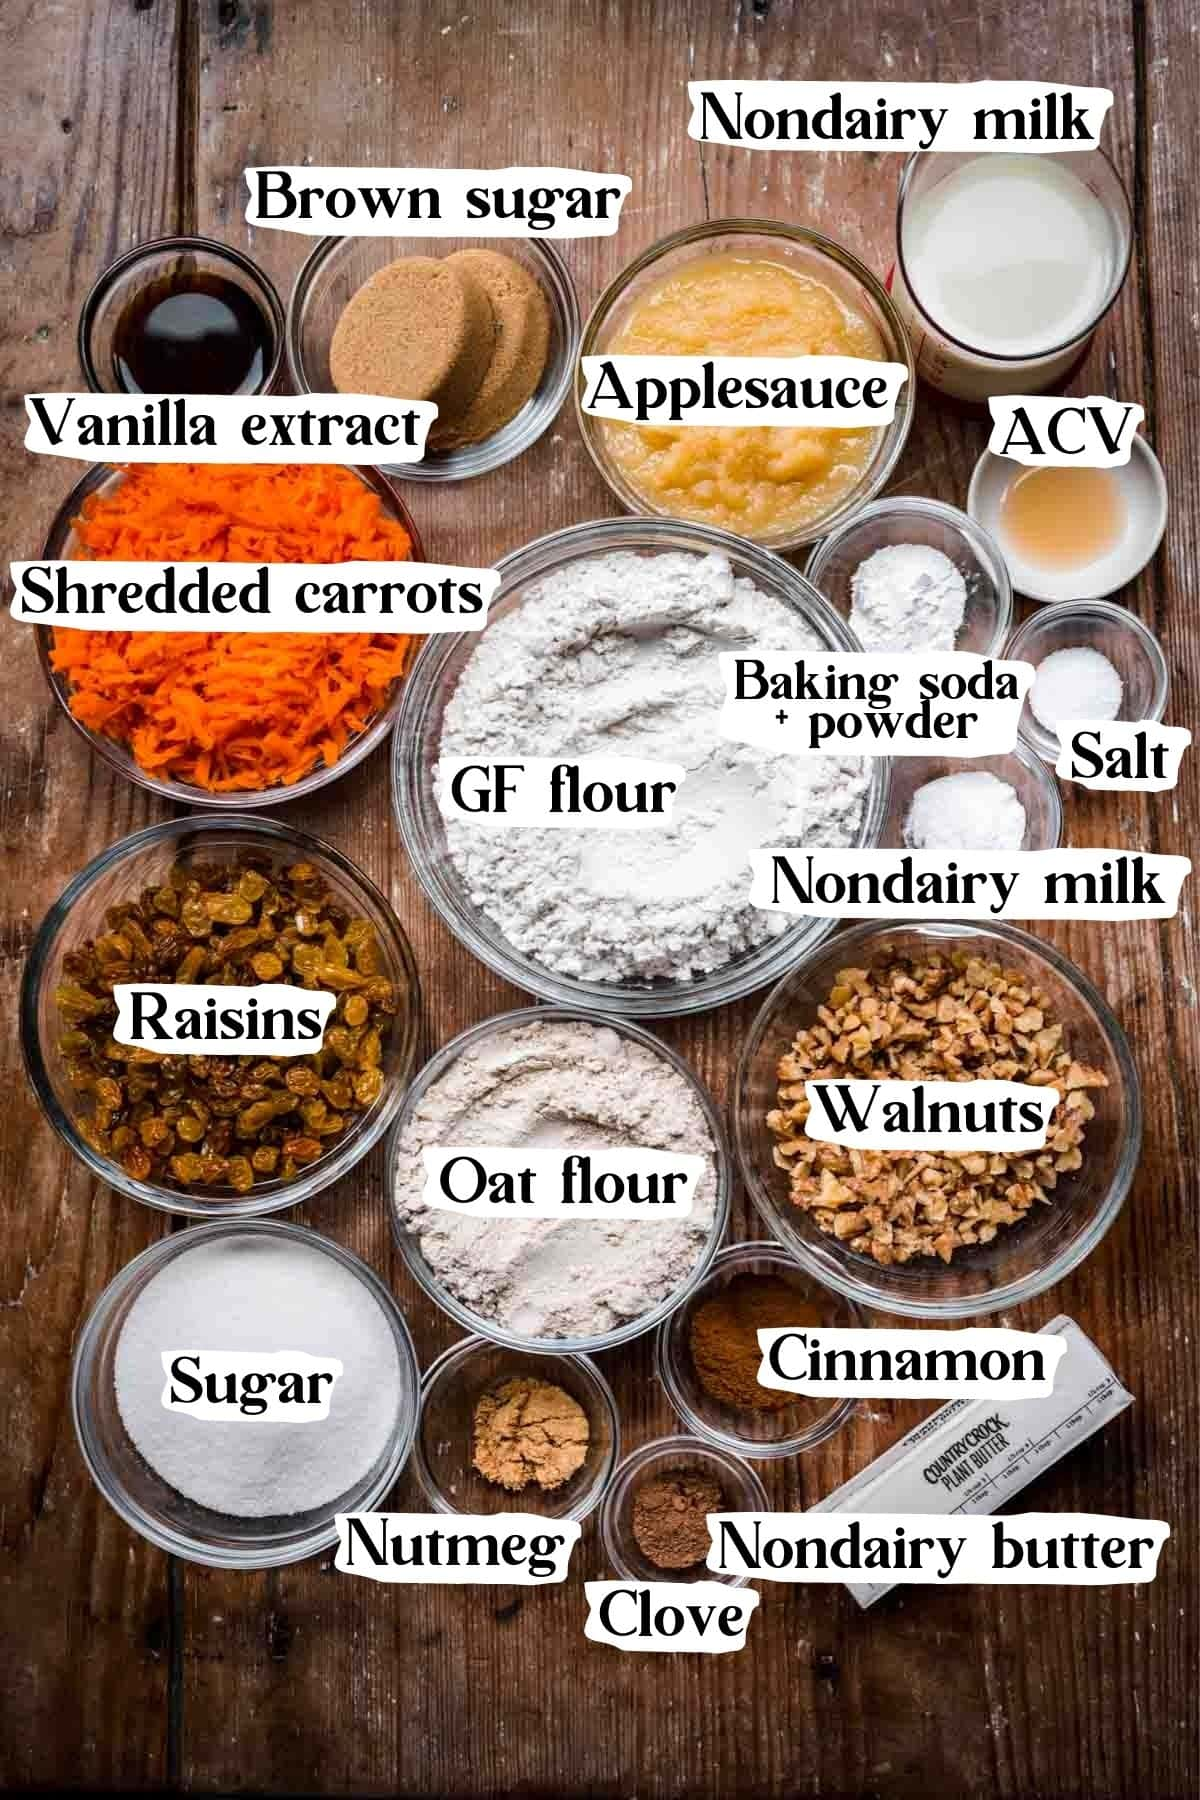 Overhead view of vegan carrot cake ingredients, including flour, sugar, carrots, and milk.